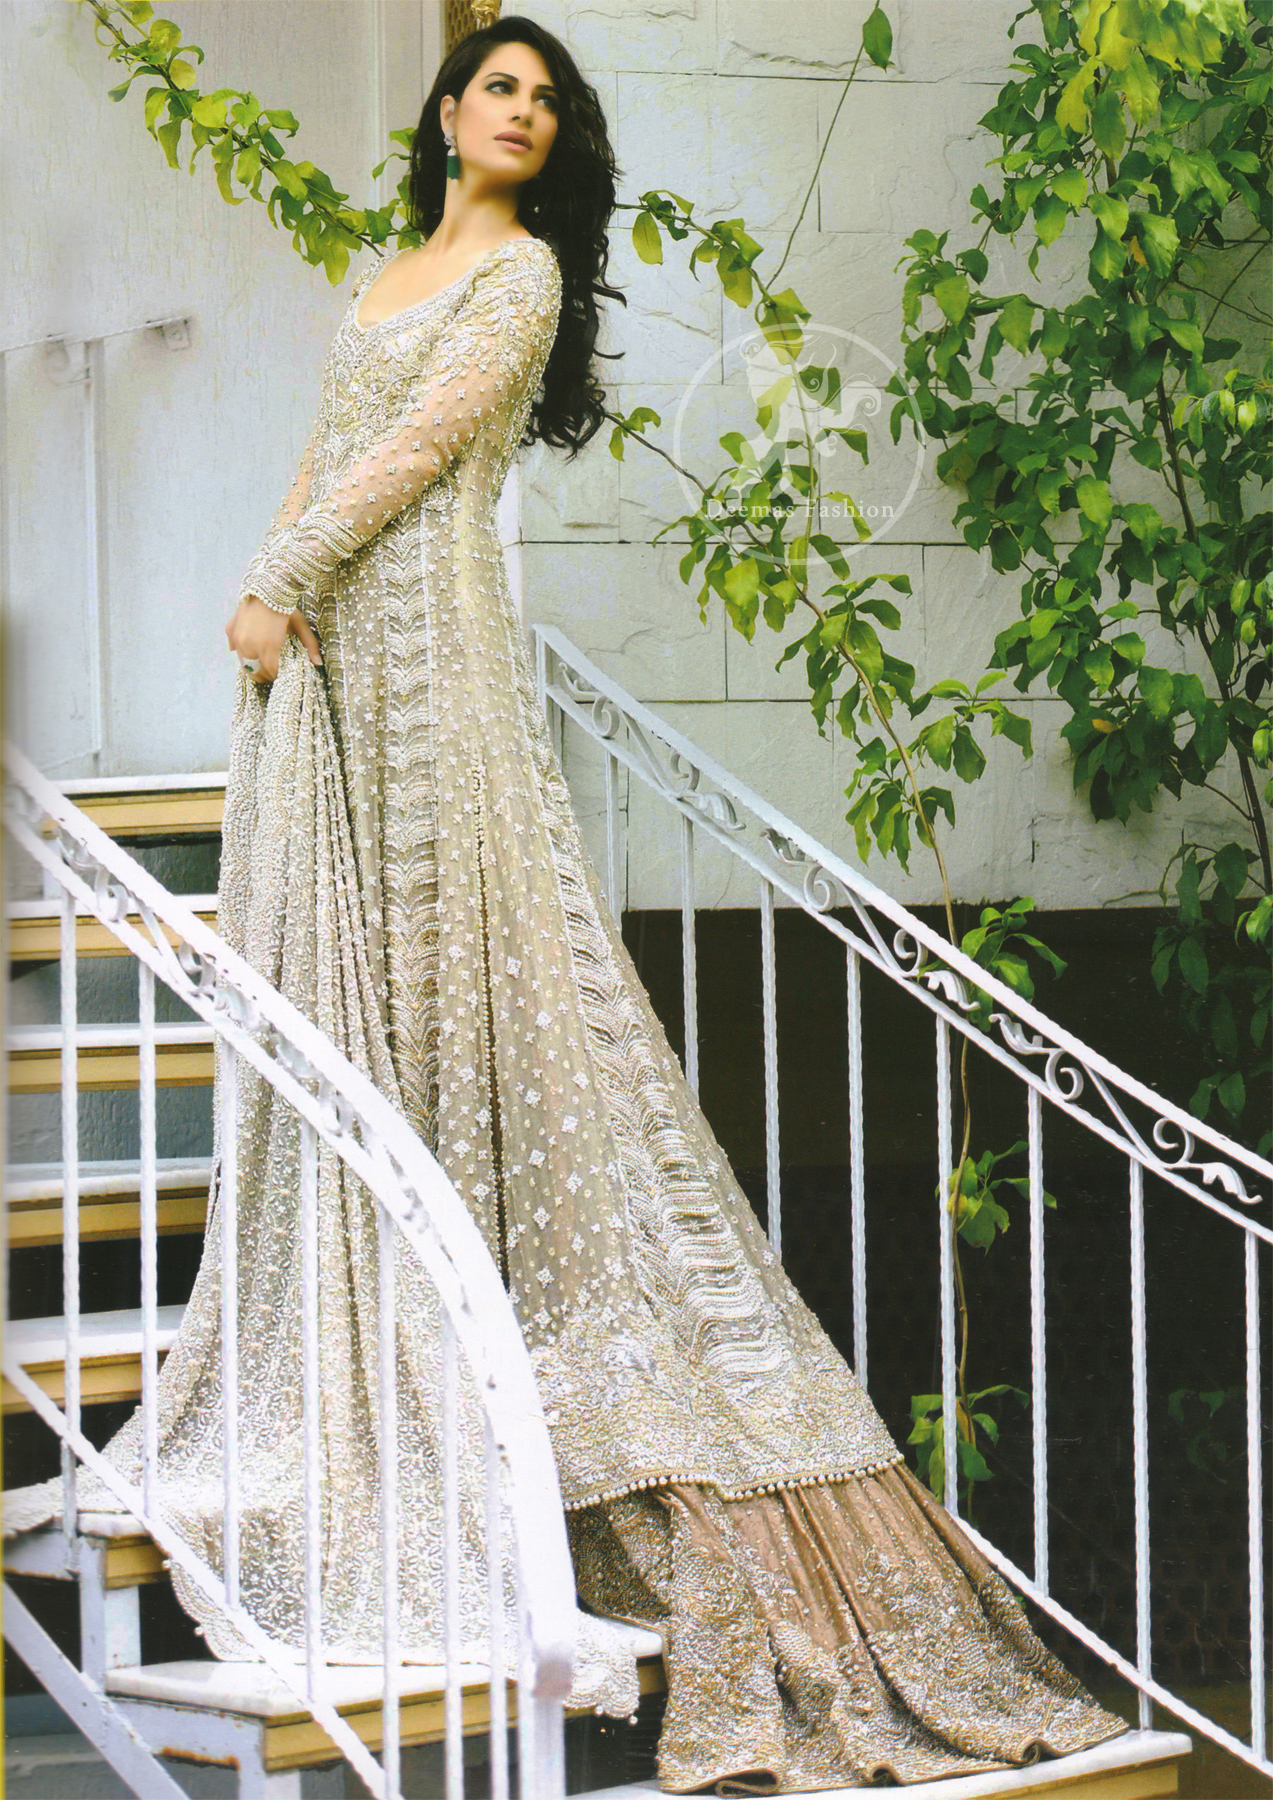 Beige Bridal Wear Frock and Dupatta with Light Brown Lehenga